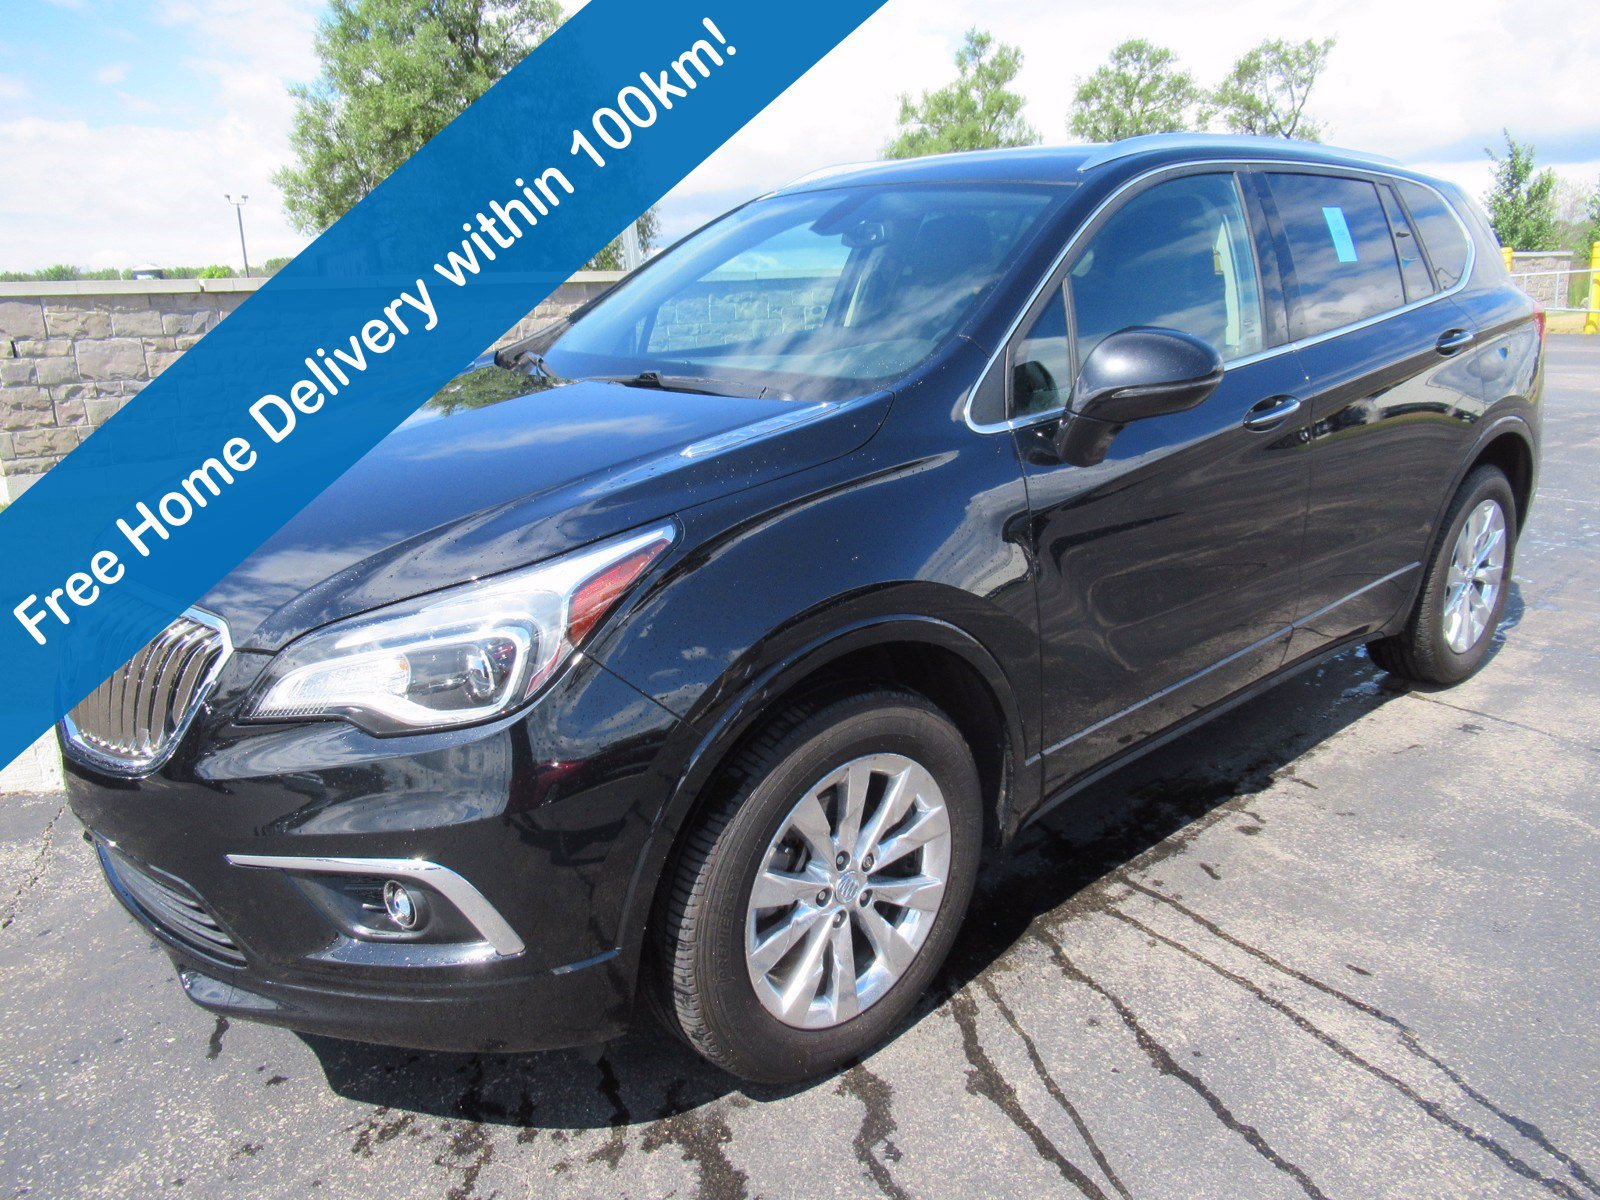 Certified Pre-Owned 2017 Buick Envision Essence AWD, Leather, Reverse Camera+Park Sensors, Heated Seats, Power Liftgate, Alloy Wheels & More